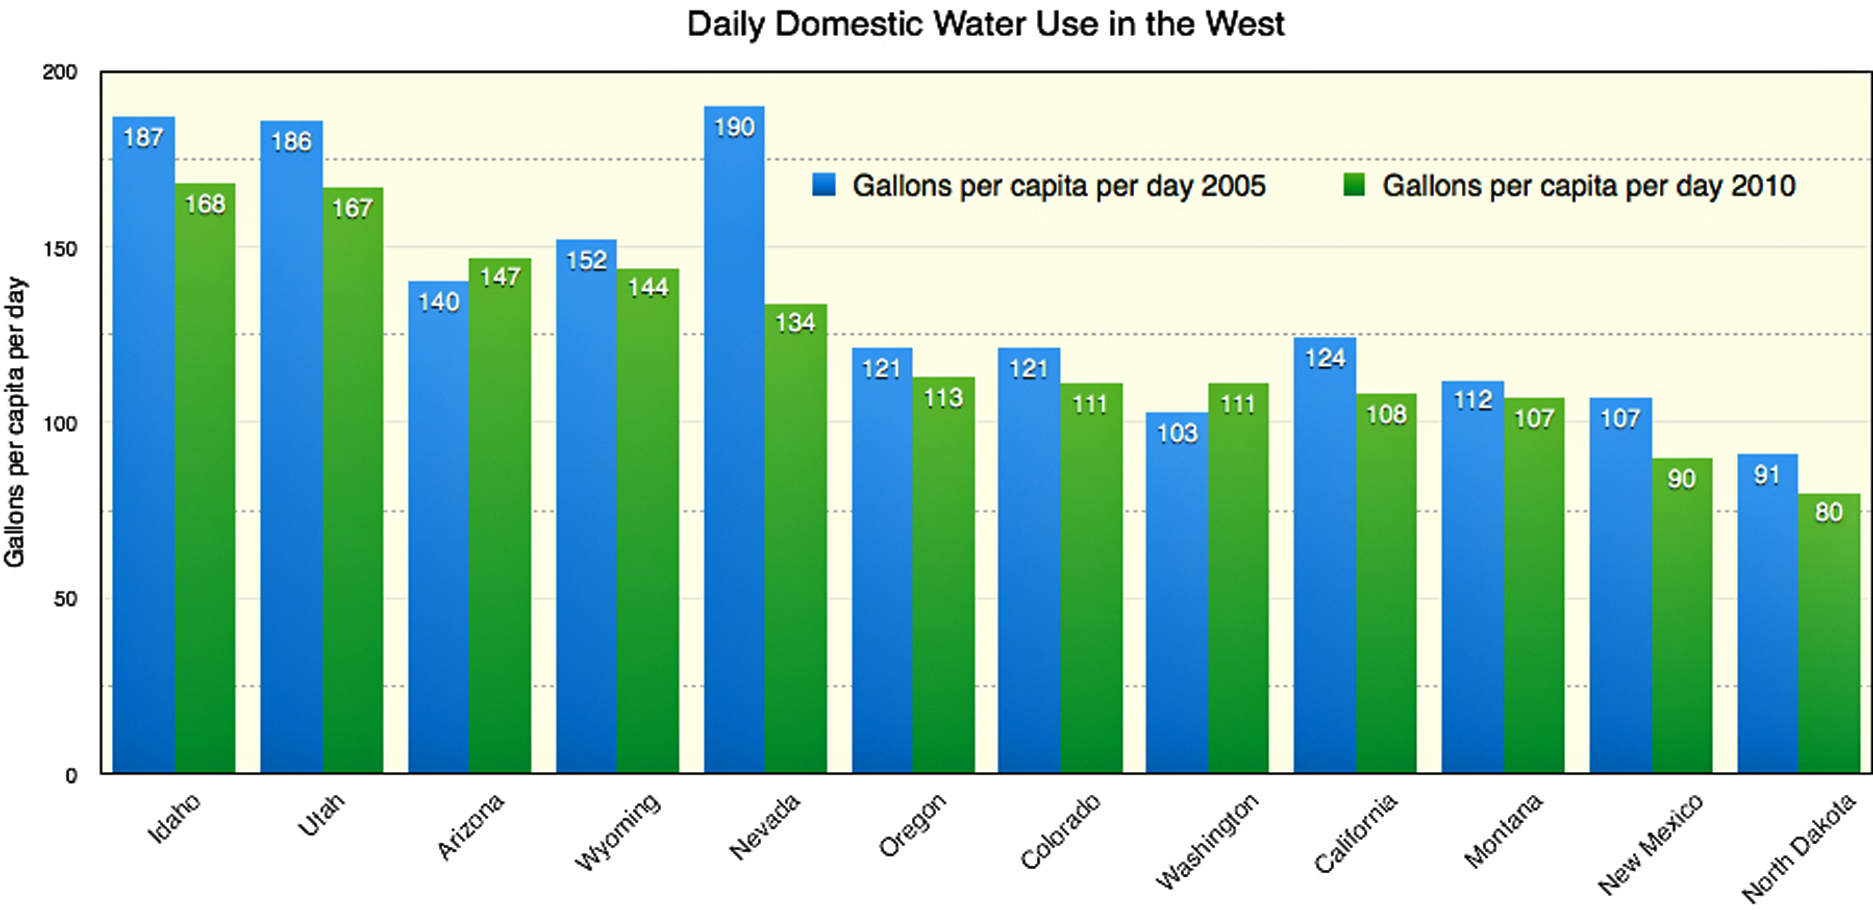 the water source usage and conservation in las vegas nevada Daily, more than 170 million gallons of used water and sewage from thousands of local homes, hotels, schools, churches, business and industry make their way to one of three treatment facilities – located in clark county, las vegas, and henderson, nevada.